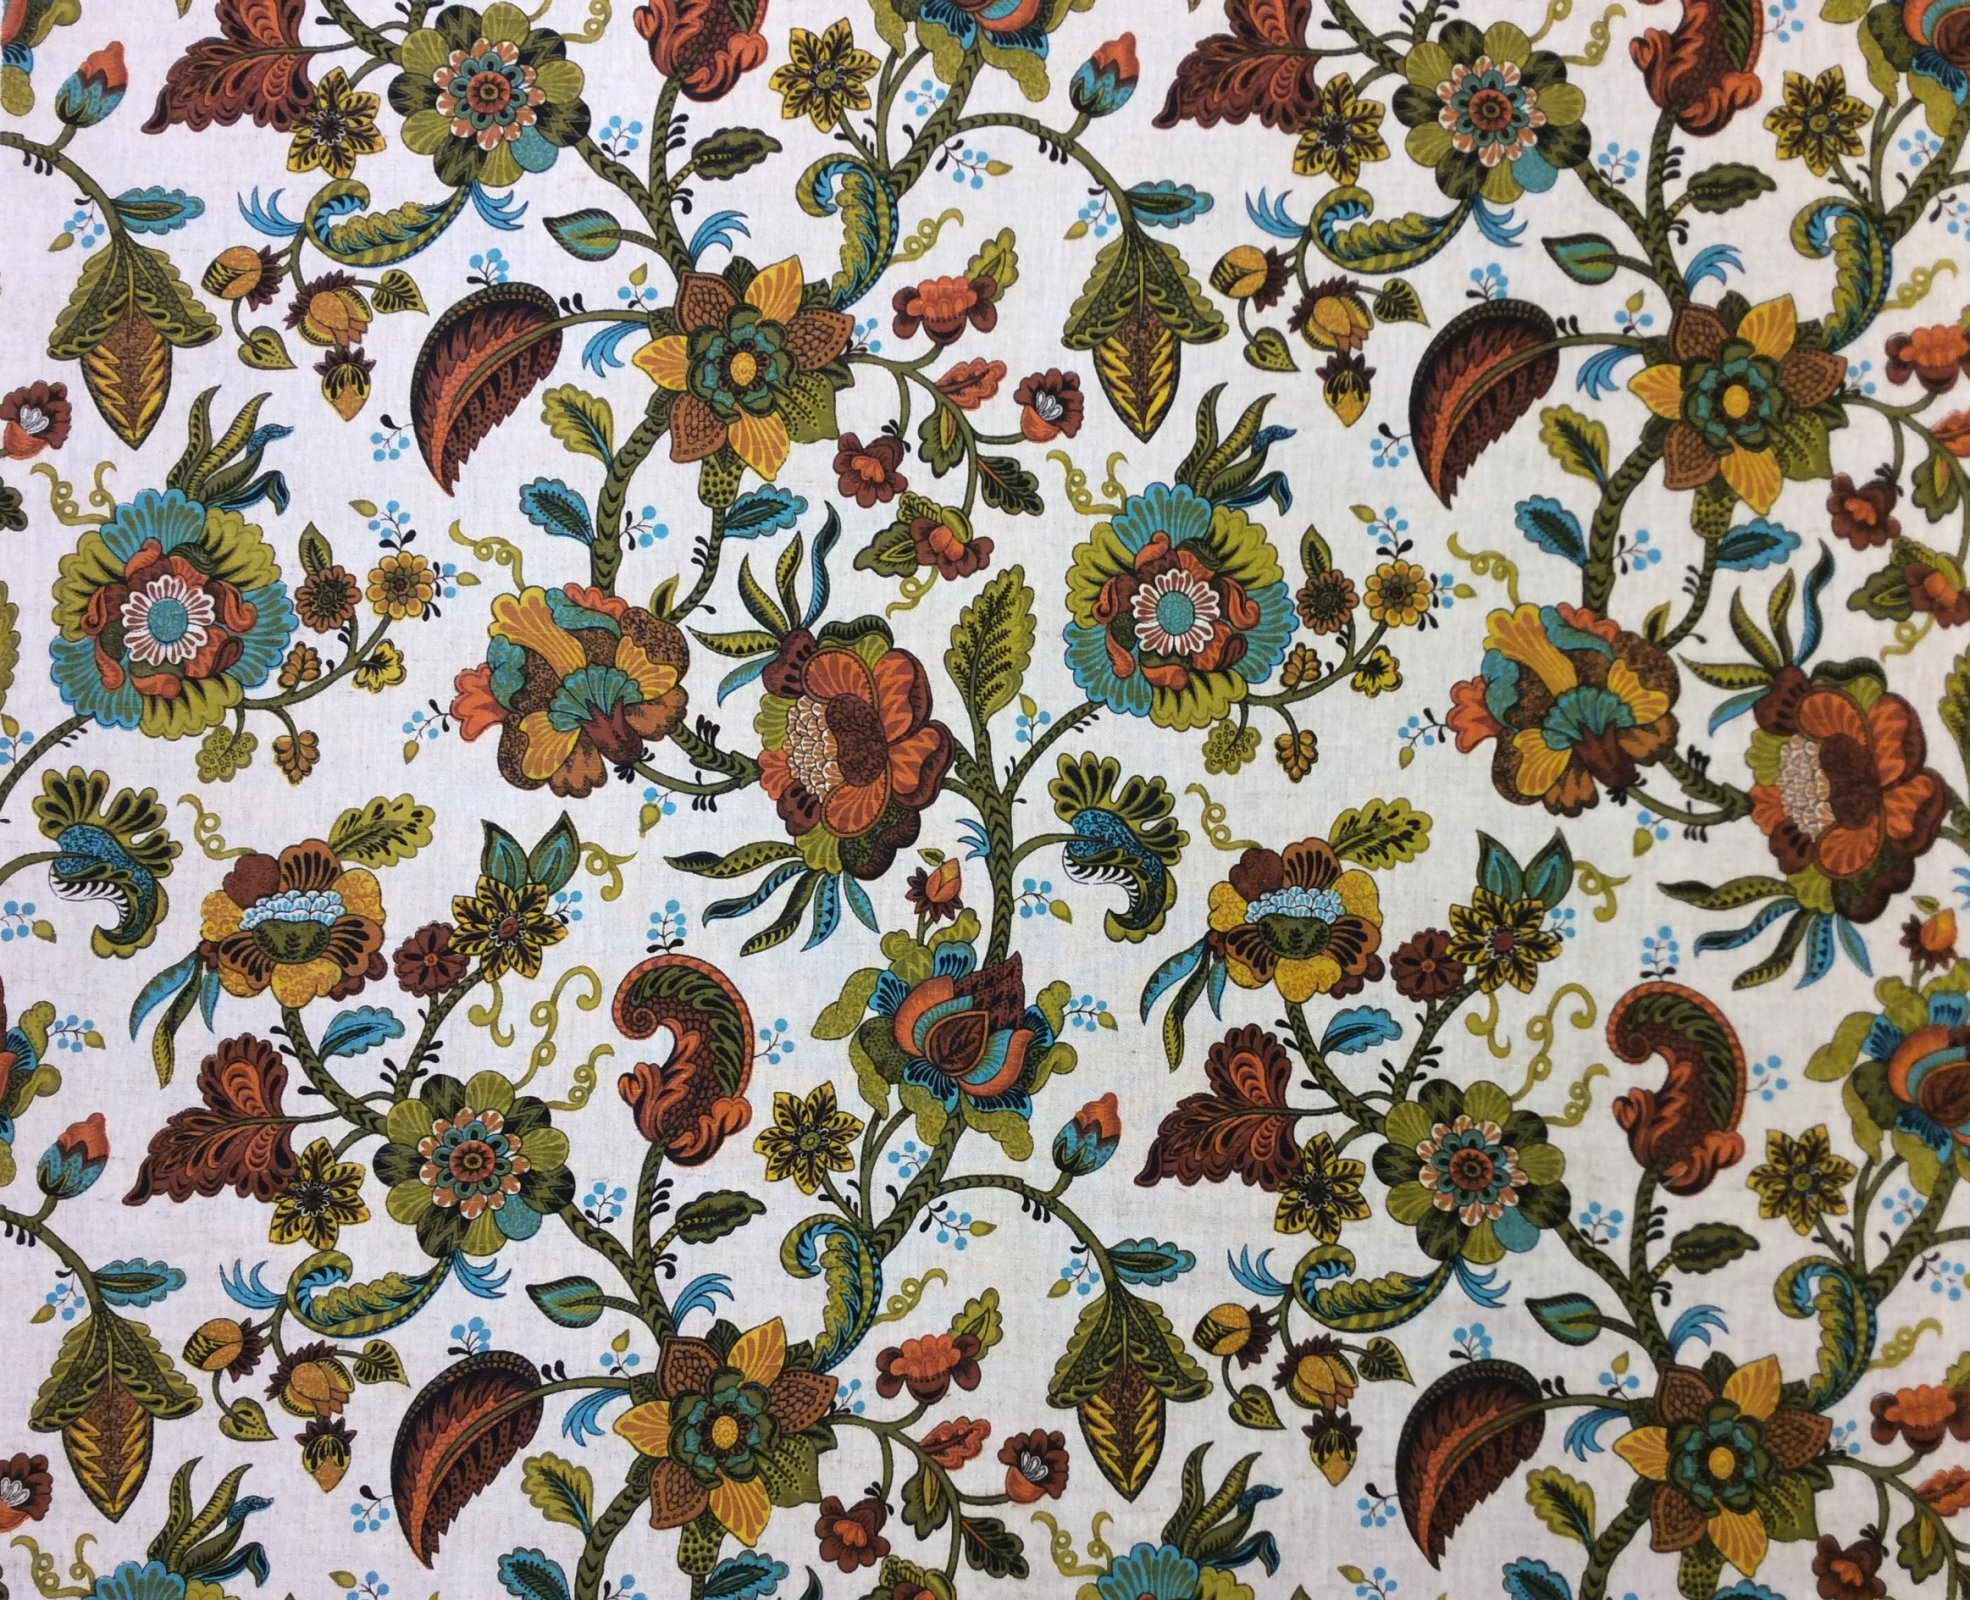 RARE! True Vintage Linen Univtex Retro Floral Vine Kitschy Screen Printed Linen Mid Century Home Decor Fabric TRV001